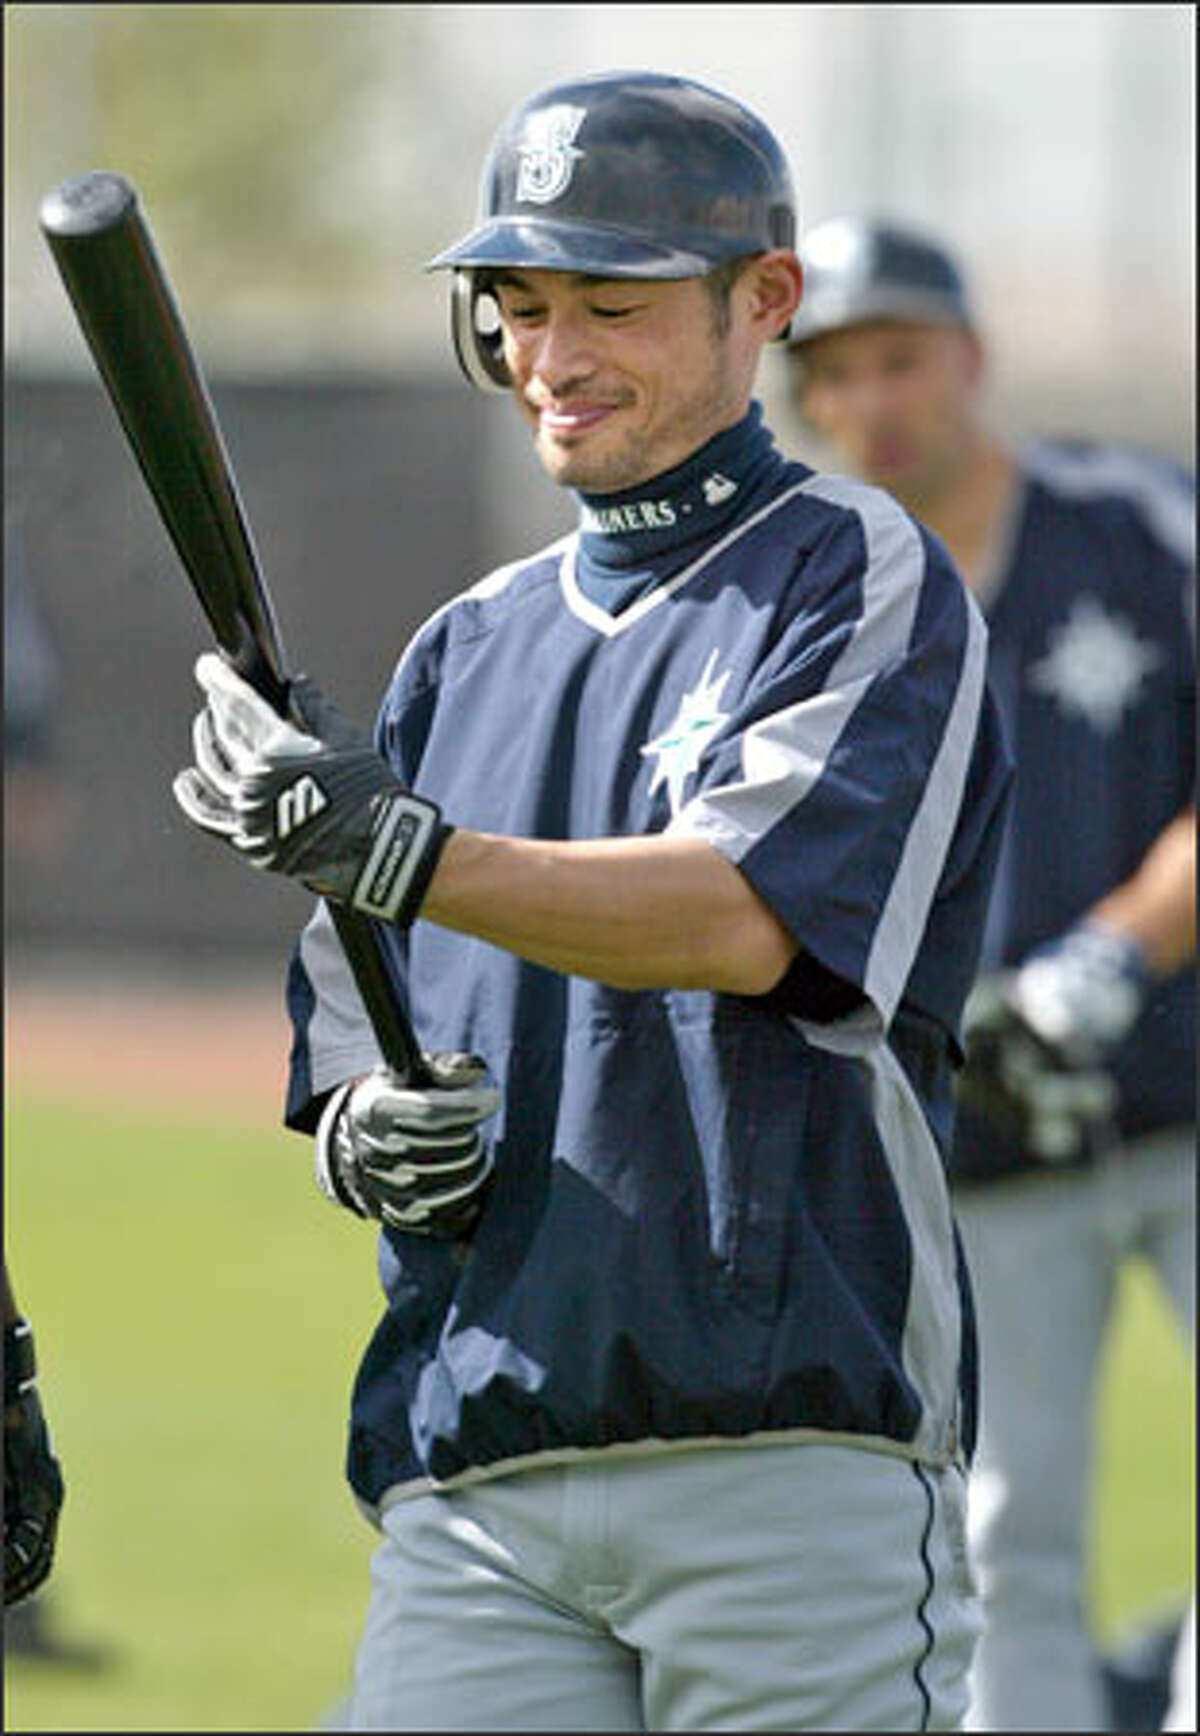 Ichiro Suzuki carries the tools of his trade after working out at Safeco Field in preparation for the Mariners' season opener Monday afternoon against the Minnesota Twins.